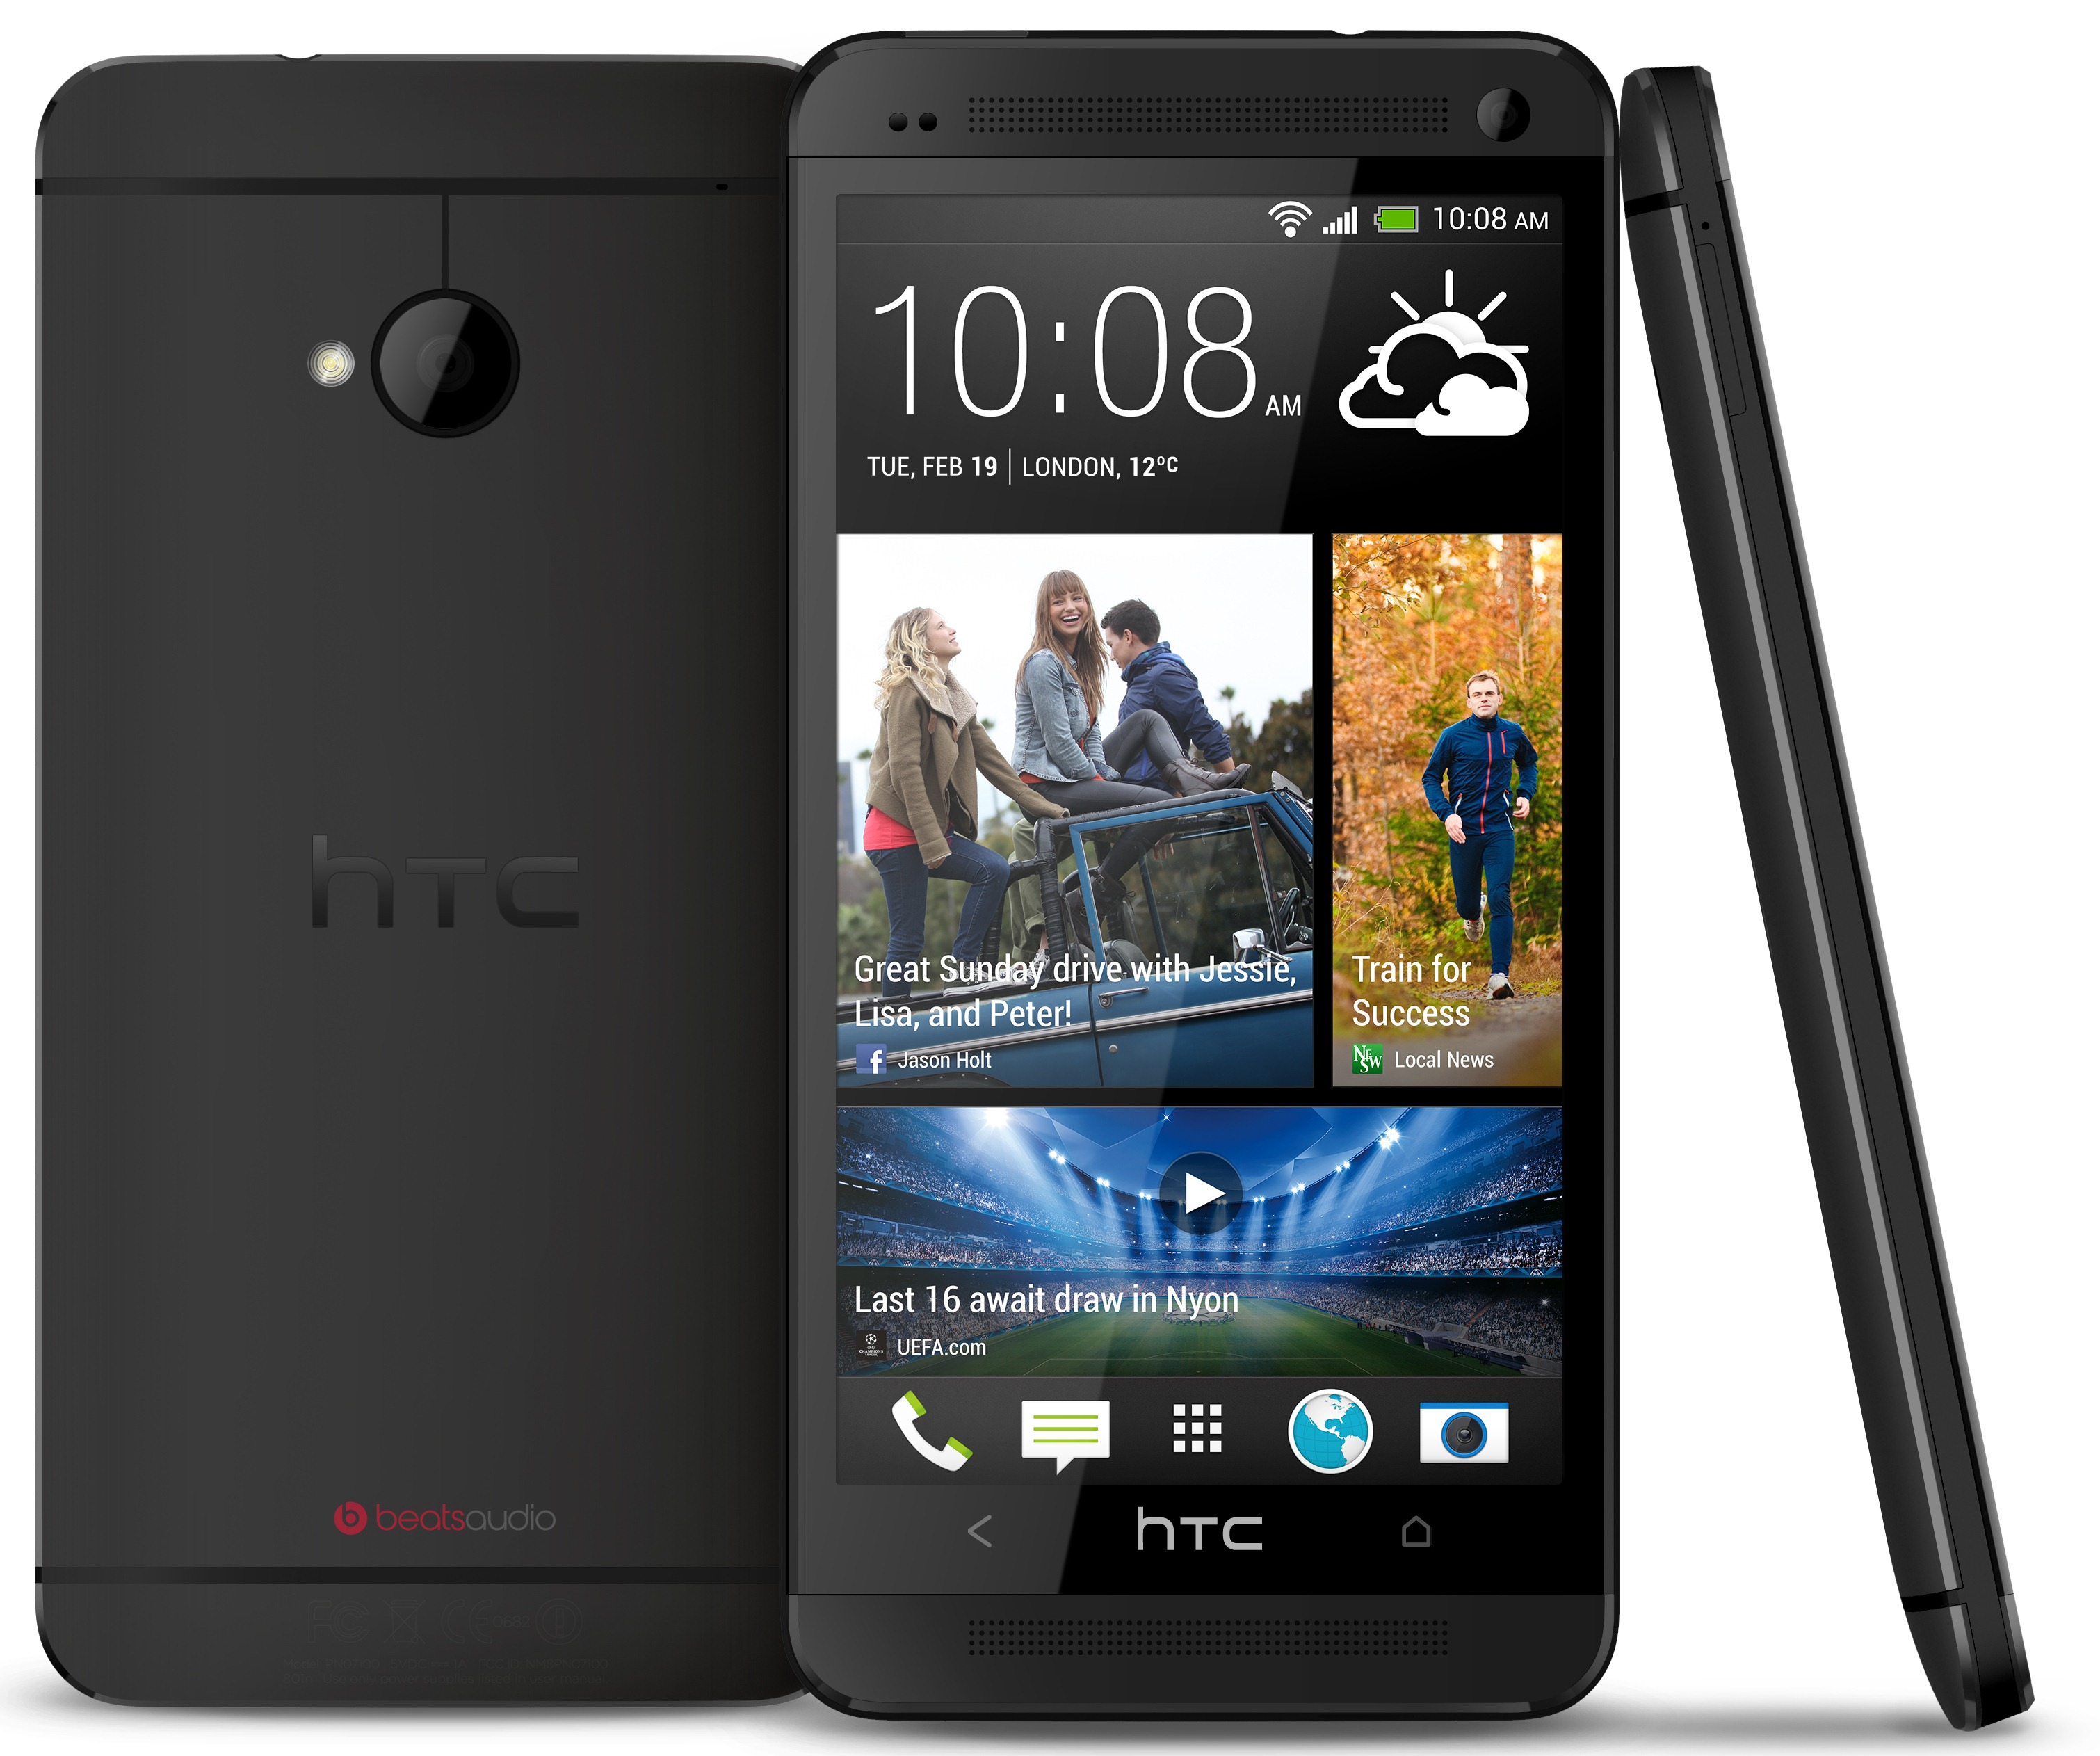 htc one  m7  bootloader unlock guide HTC One X 4G LTE HTC One X Camera